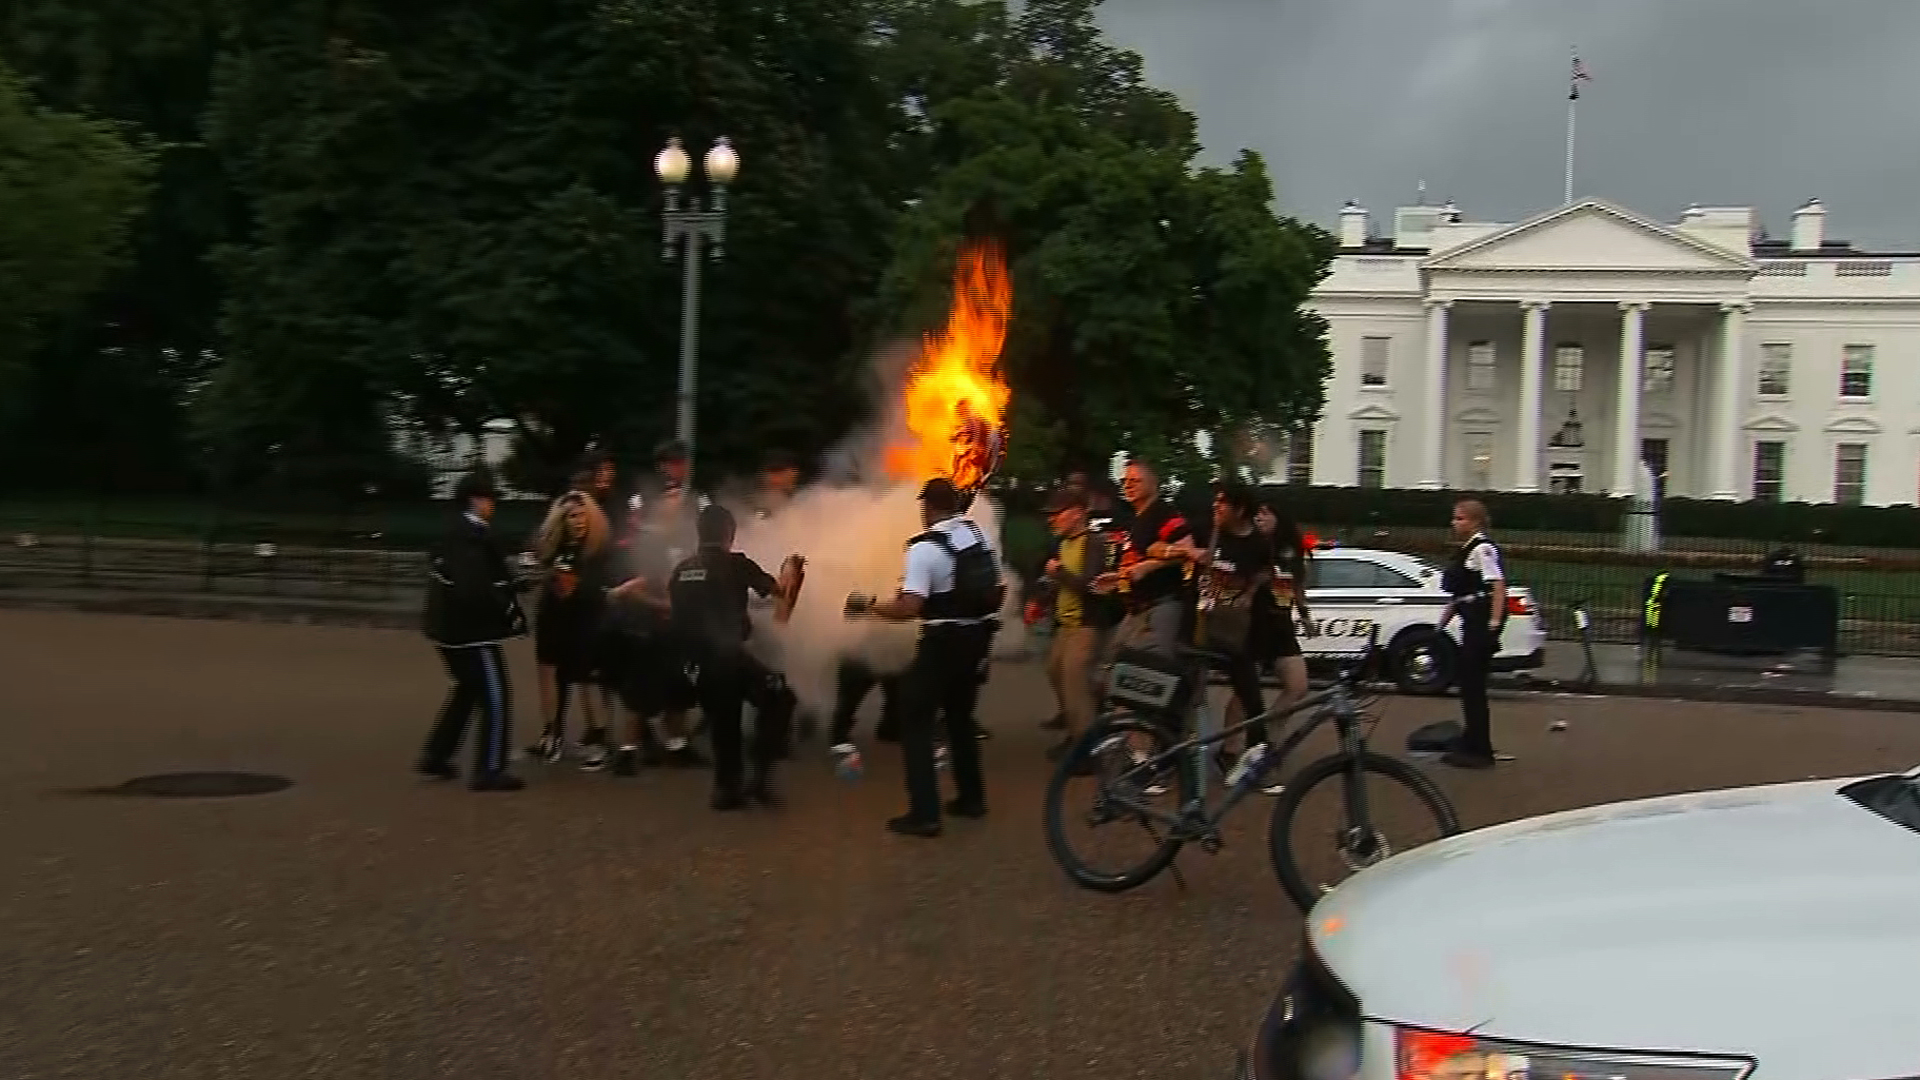 A protest group sets an American flag on fire outside the White House on July 4, 2019. (Credit: CNN)